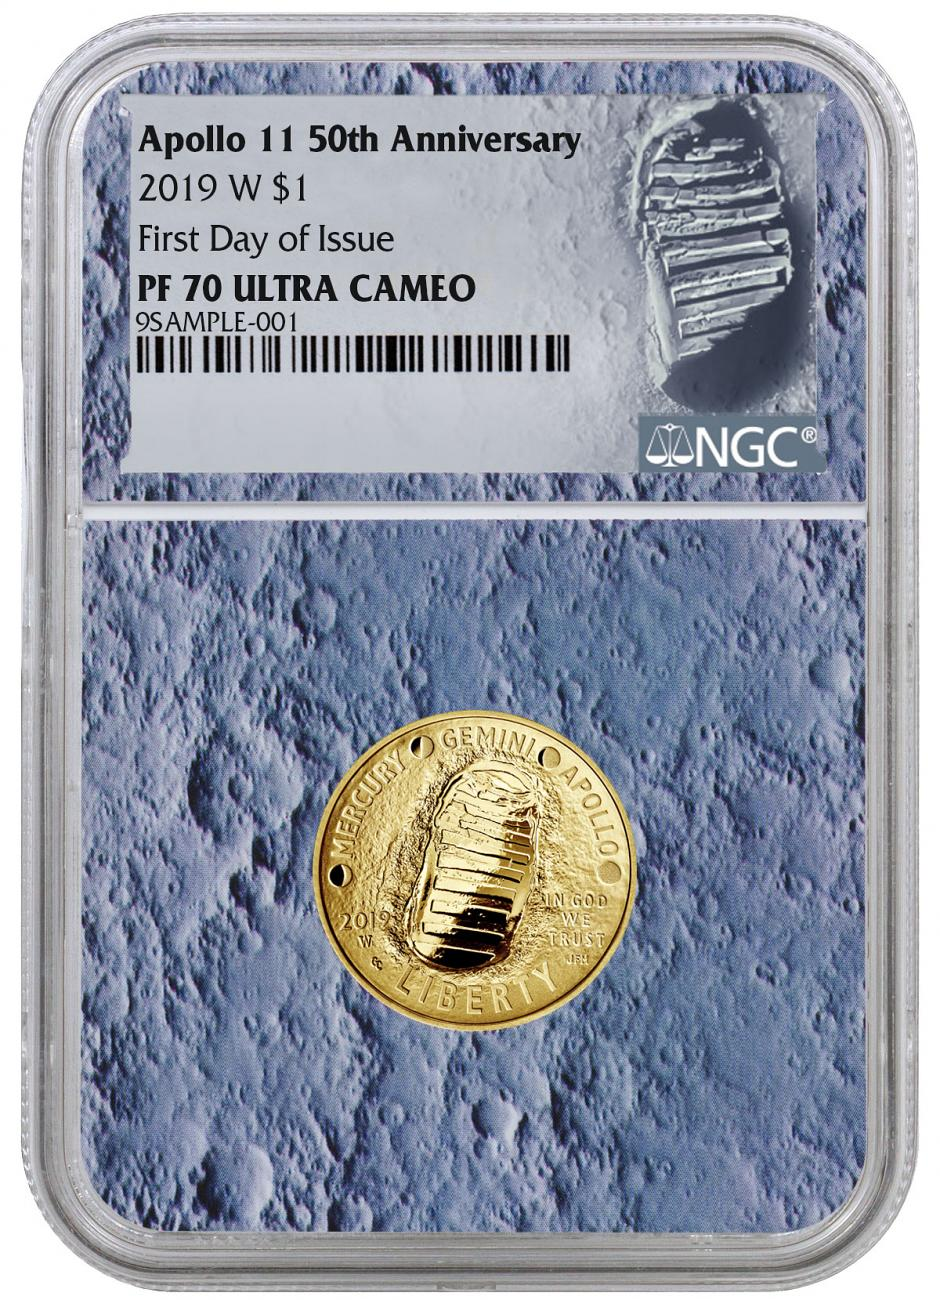 2019-W US Apollo 11 50th Anniversary $5 Gold Commemorative Proof Coin NGC PF70 FDI With Apollo 11 Mission Patch Moon Core Holder